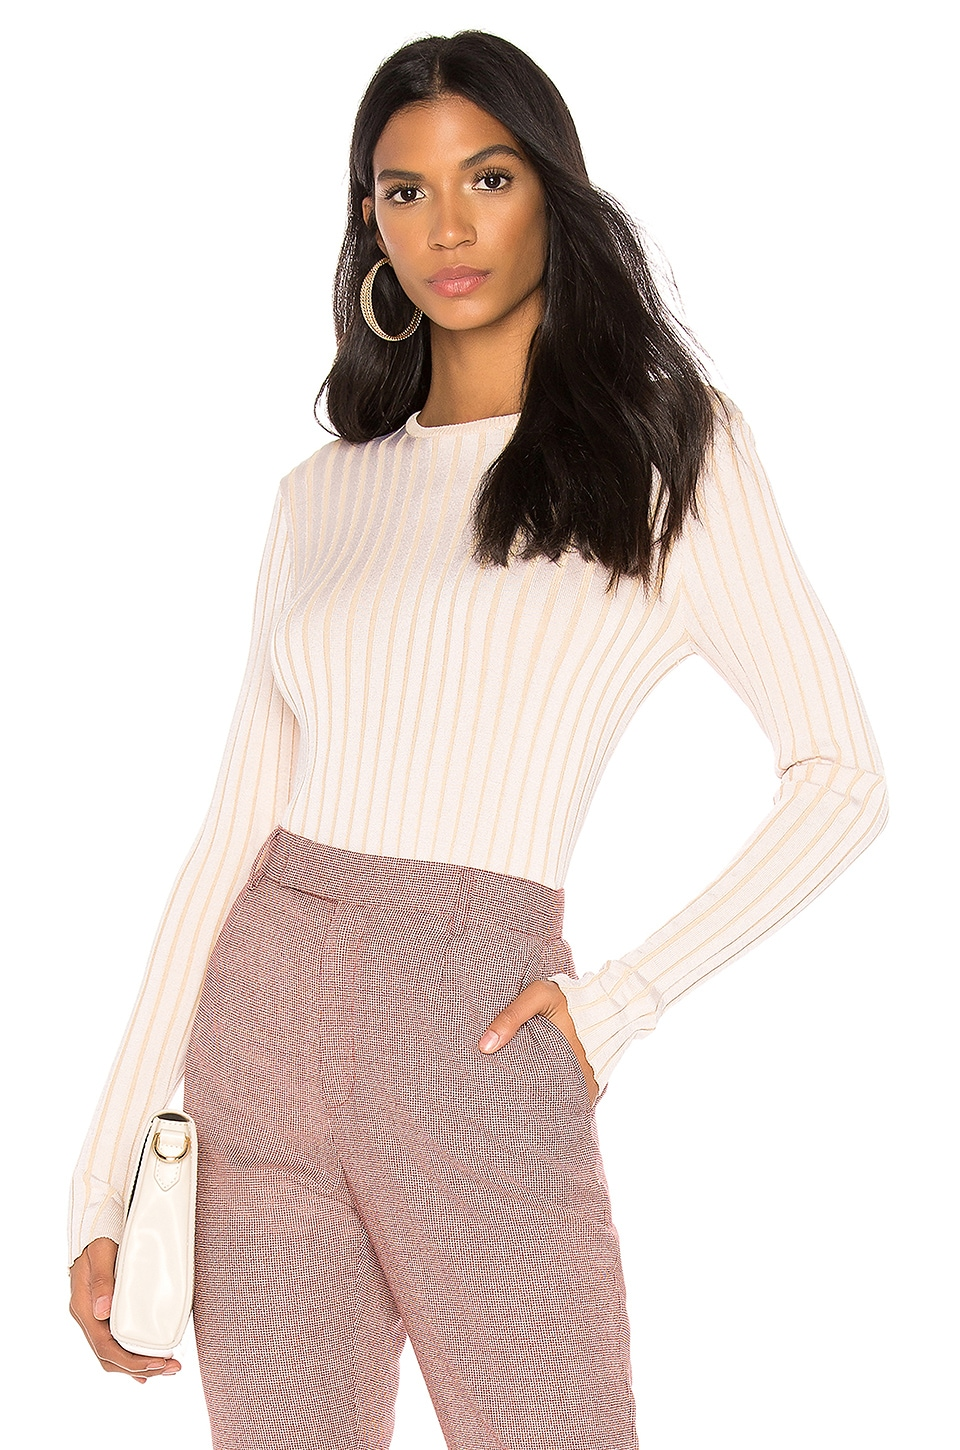 Equipment Saviny Sweater in Natural White & Beige